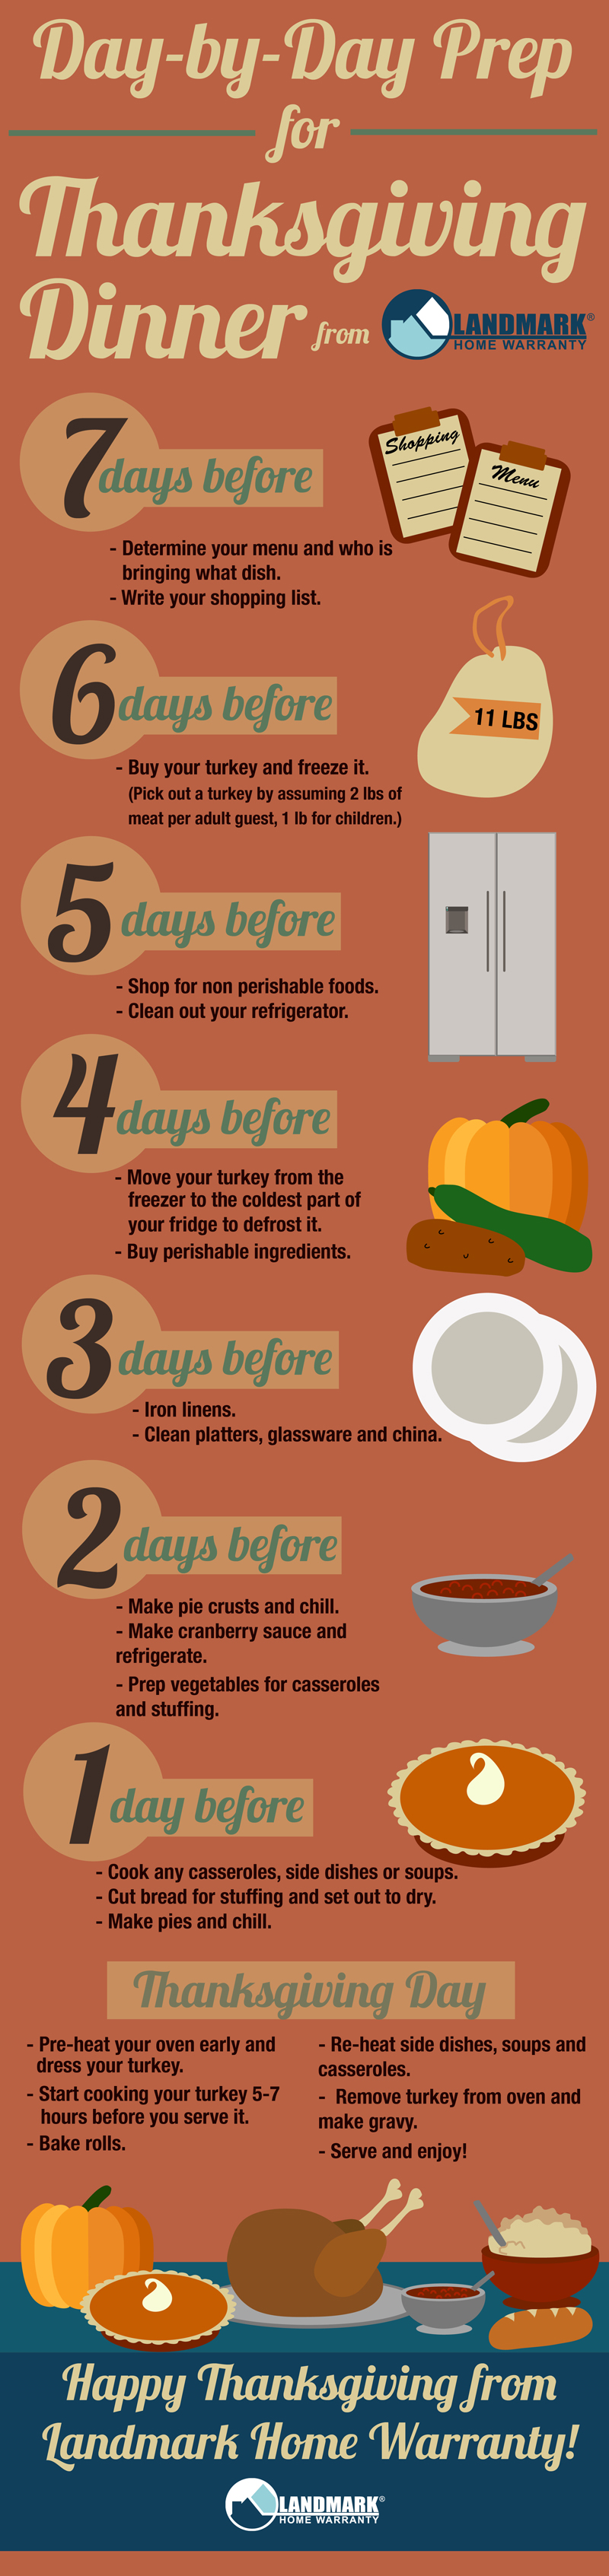 Download this graphic on how to prep your Thanksgiving dinner day by day.